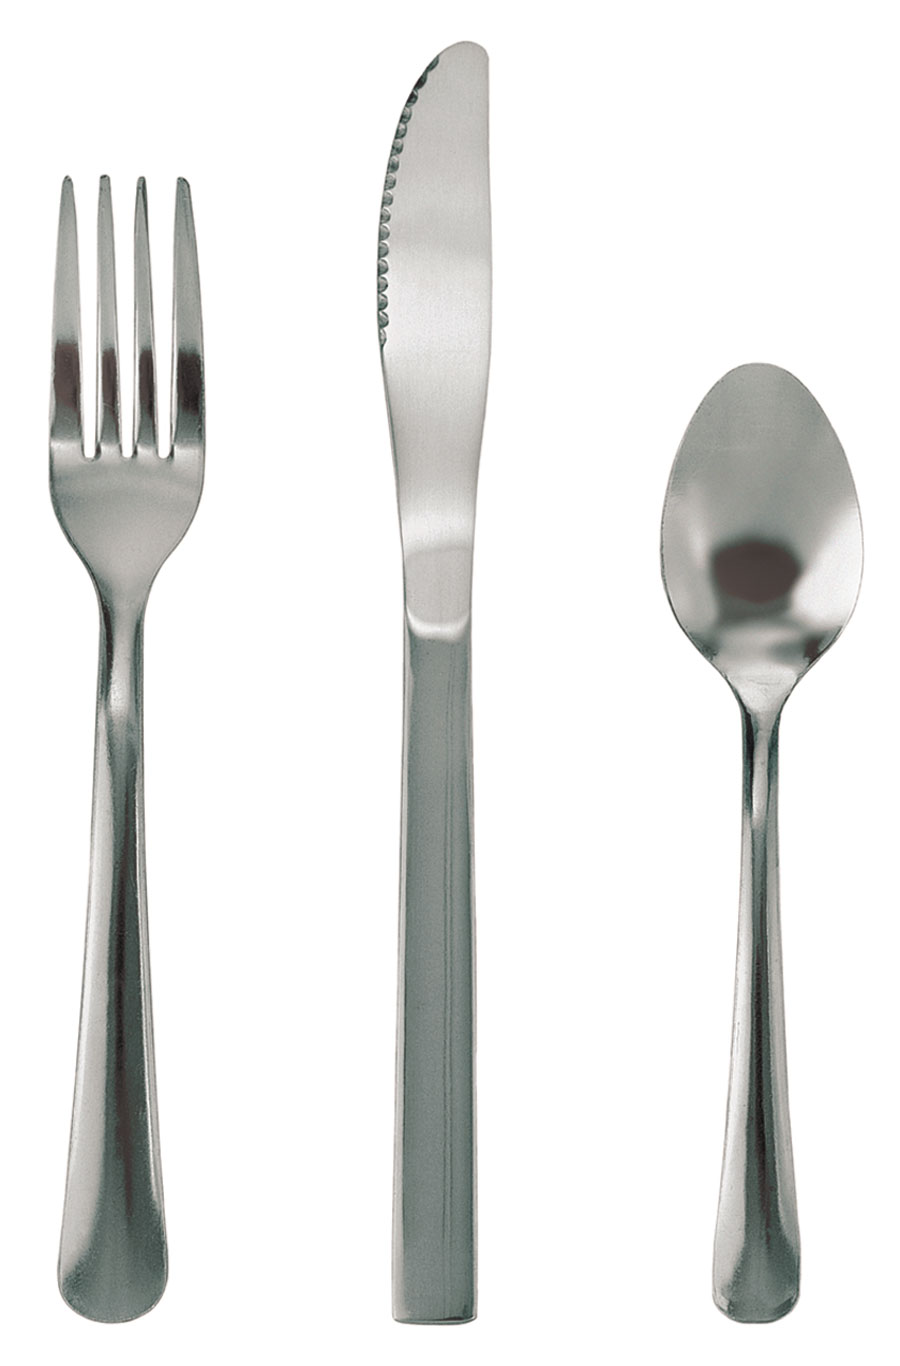 Update International WM/CP-34 Windsor Medium Weight Ice Teaspoon in Clear Pack - 2 doz